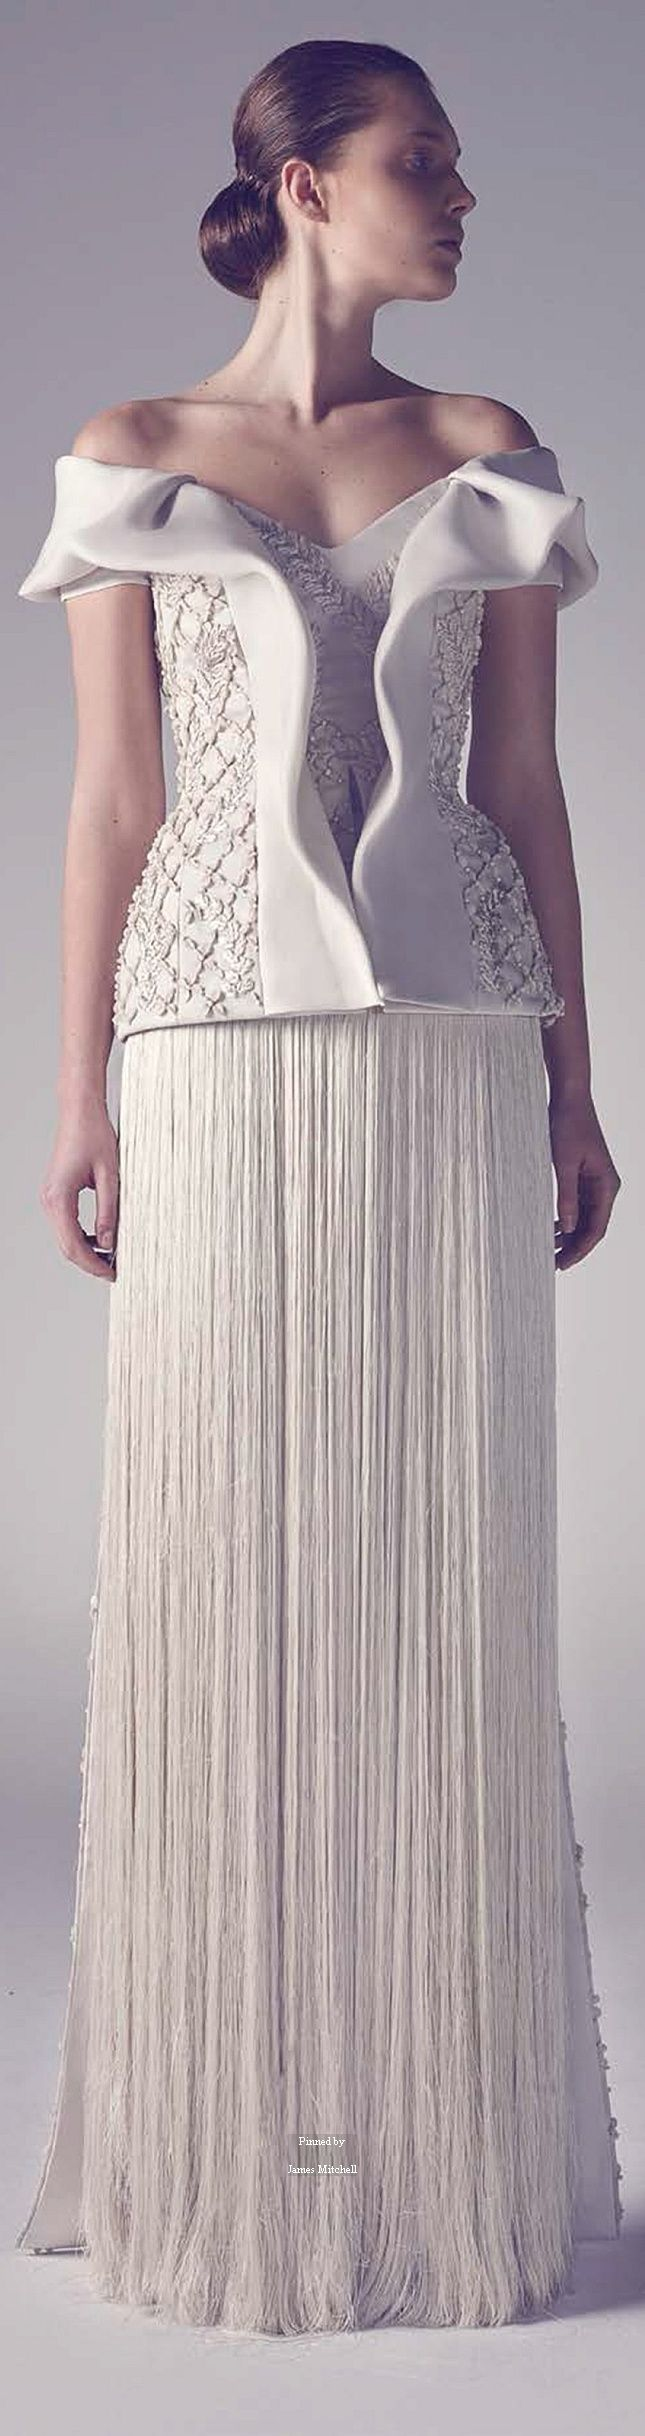 Ashi Haute Couture Spring Summer 2015 collection